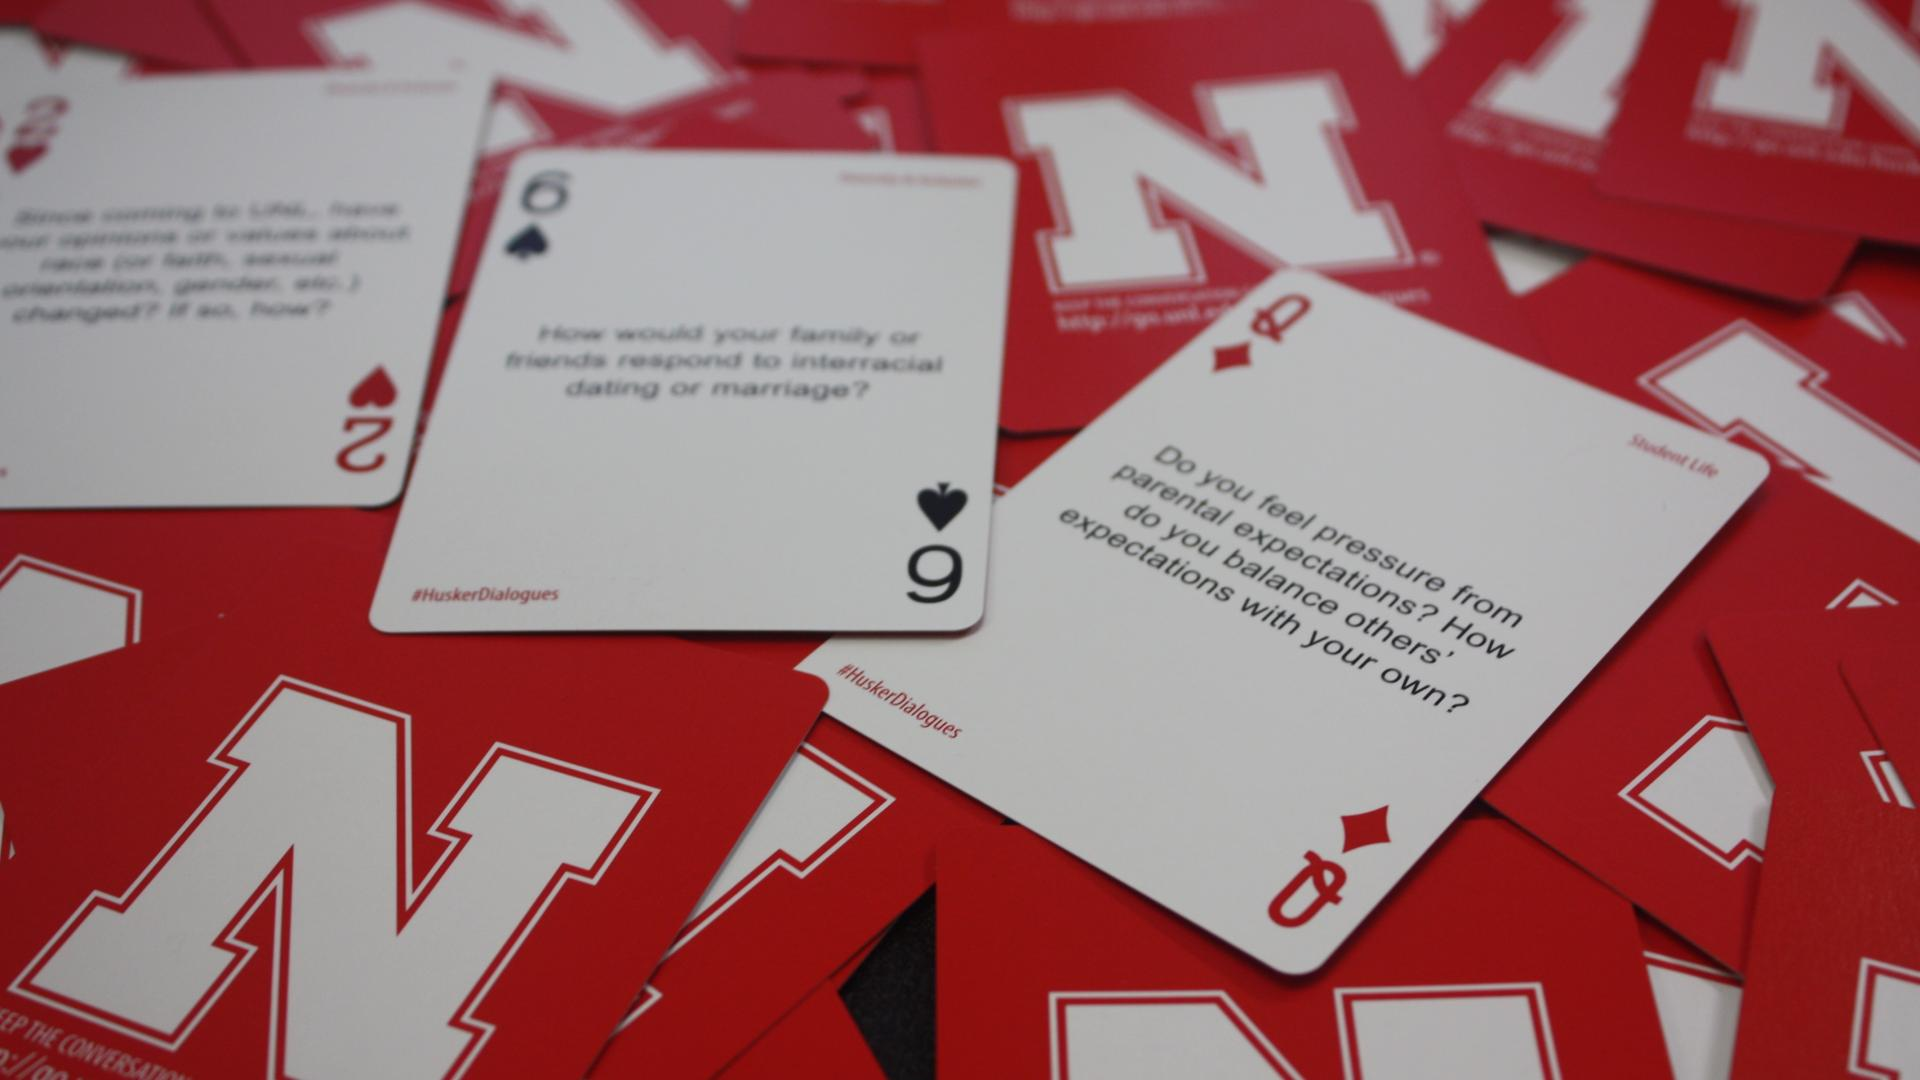 Husker Dialogues Cards to inspire meaningful conversations at University of Nebraska-Lincoln